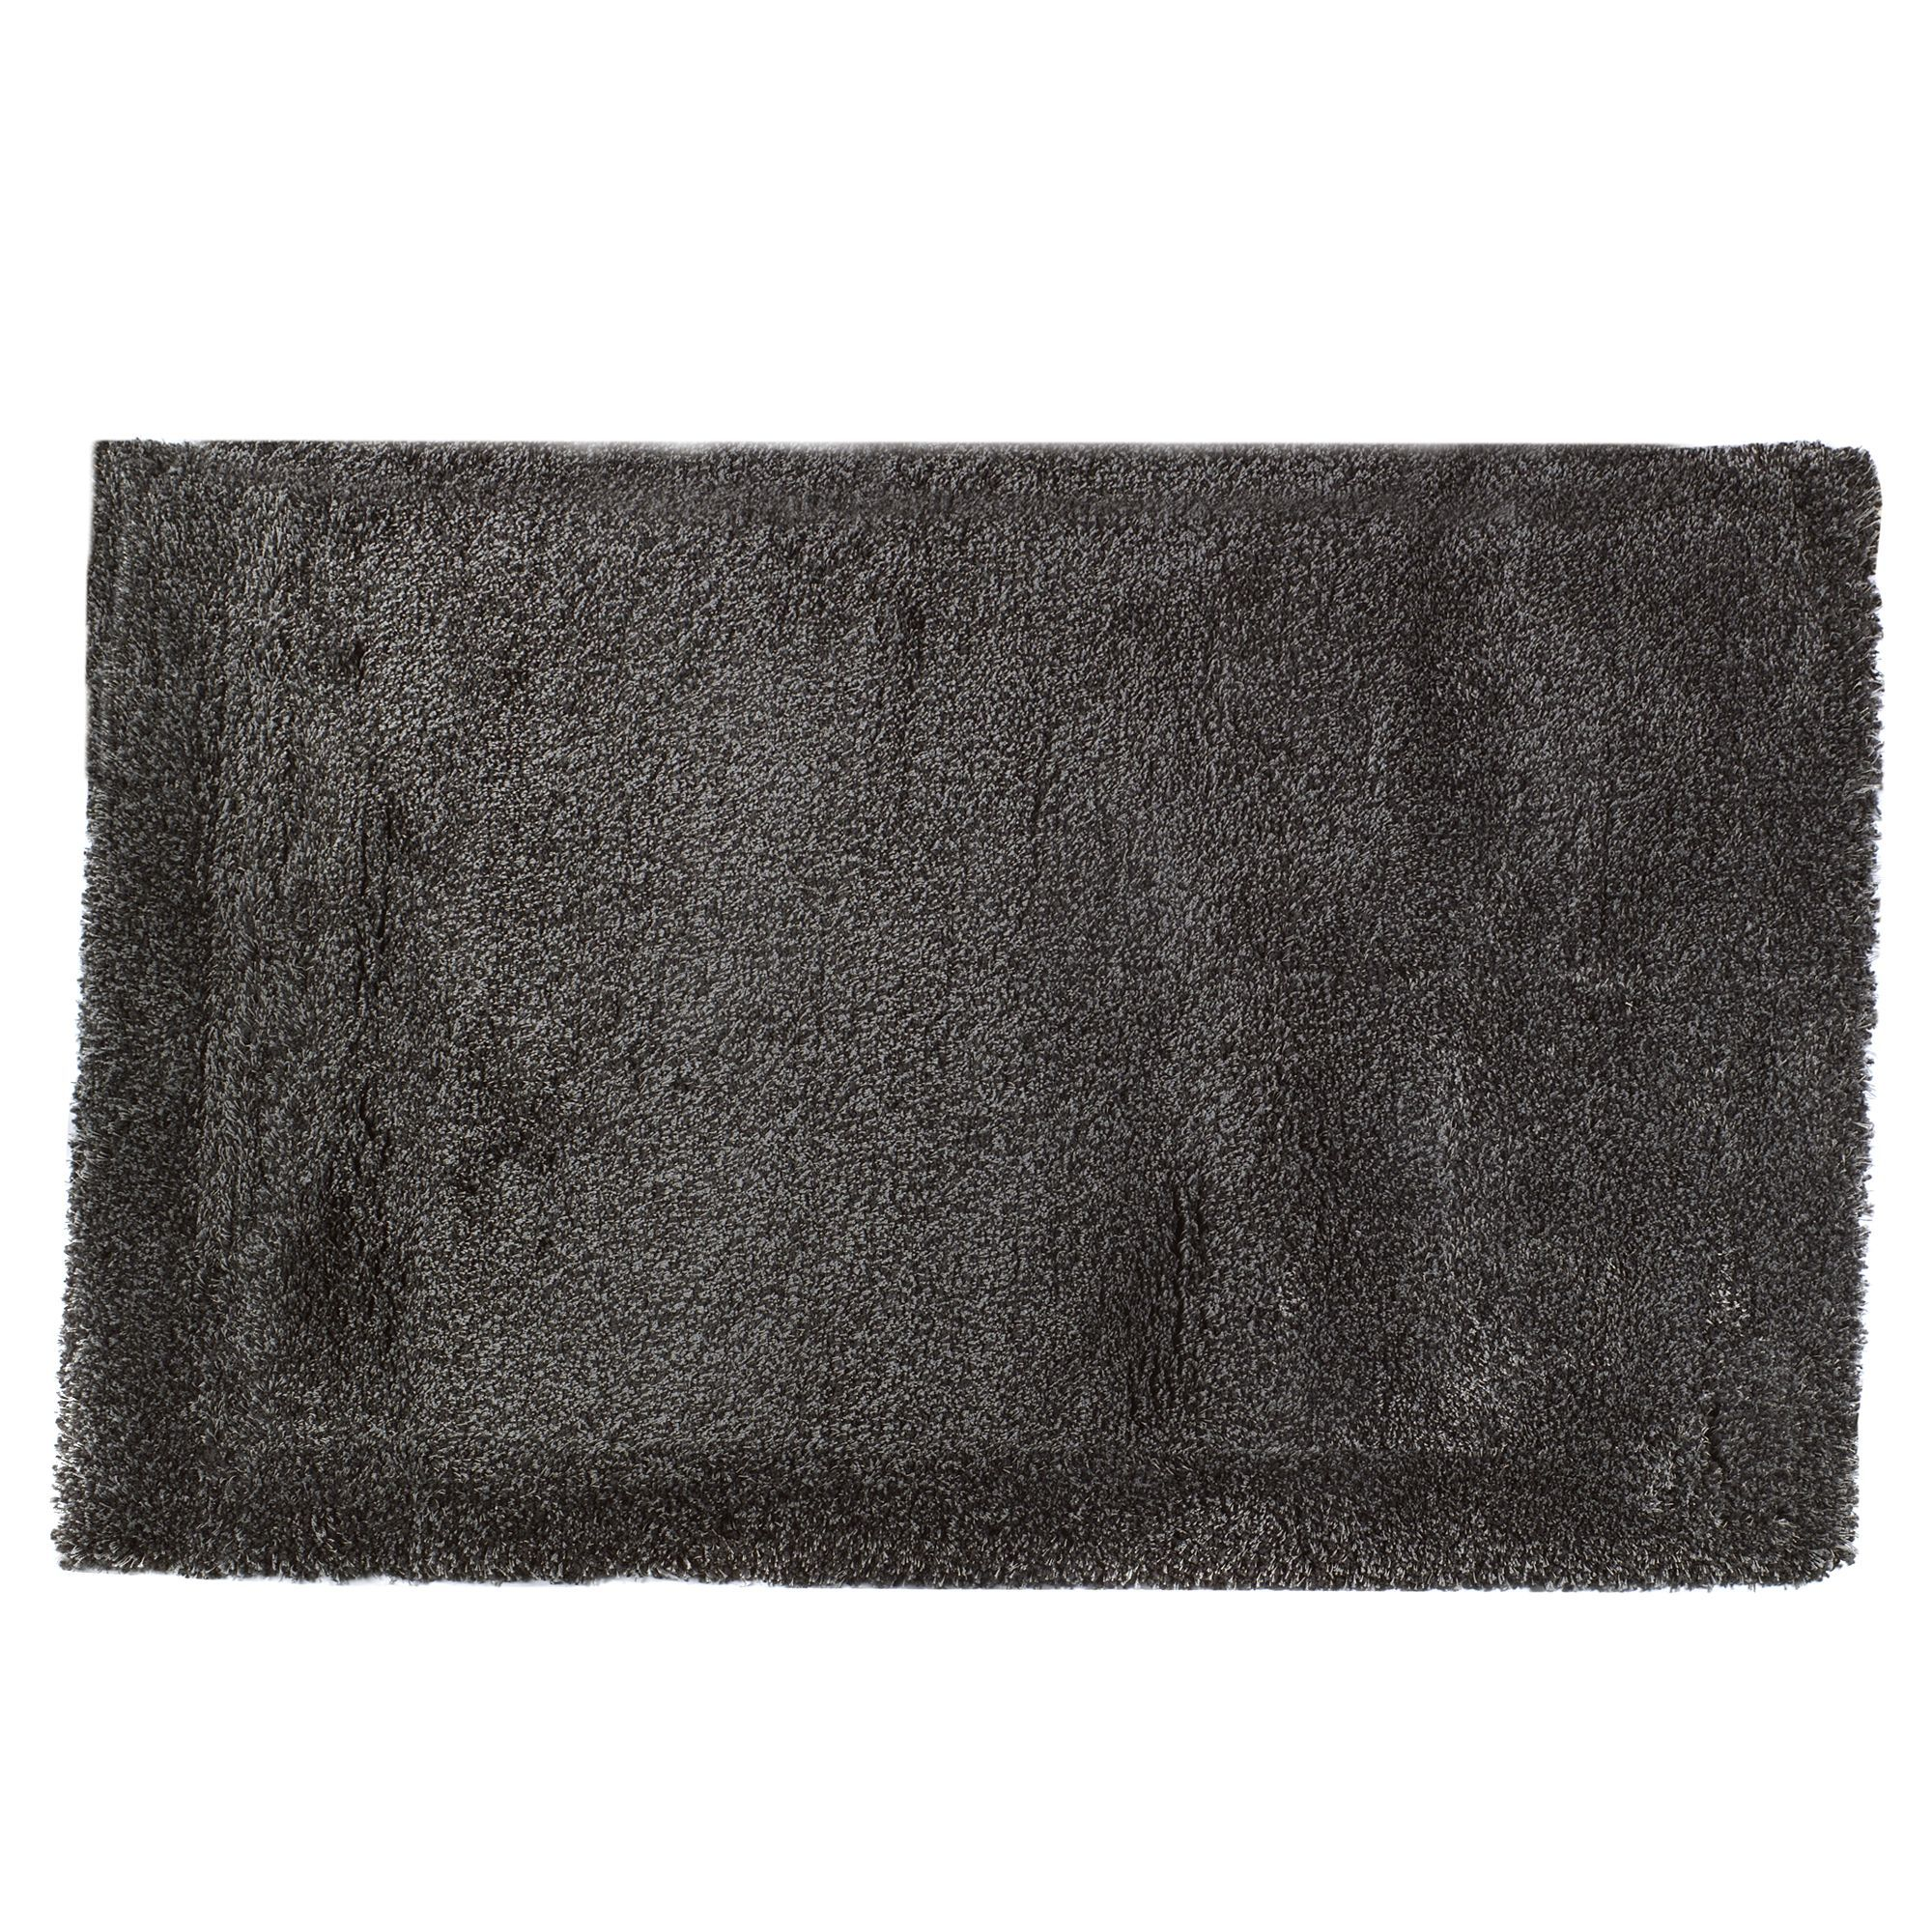 top trendy tapis poils longs xcm gris gris luxus les tapis textiles et tapis with tapis alinea. Black Bedroom Furniture Sets. Home Design Ideas